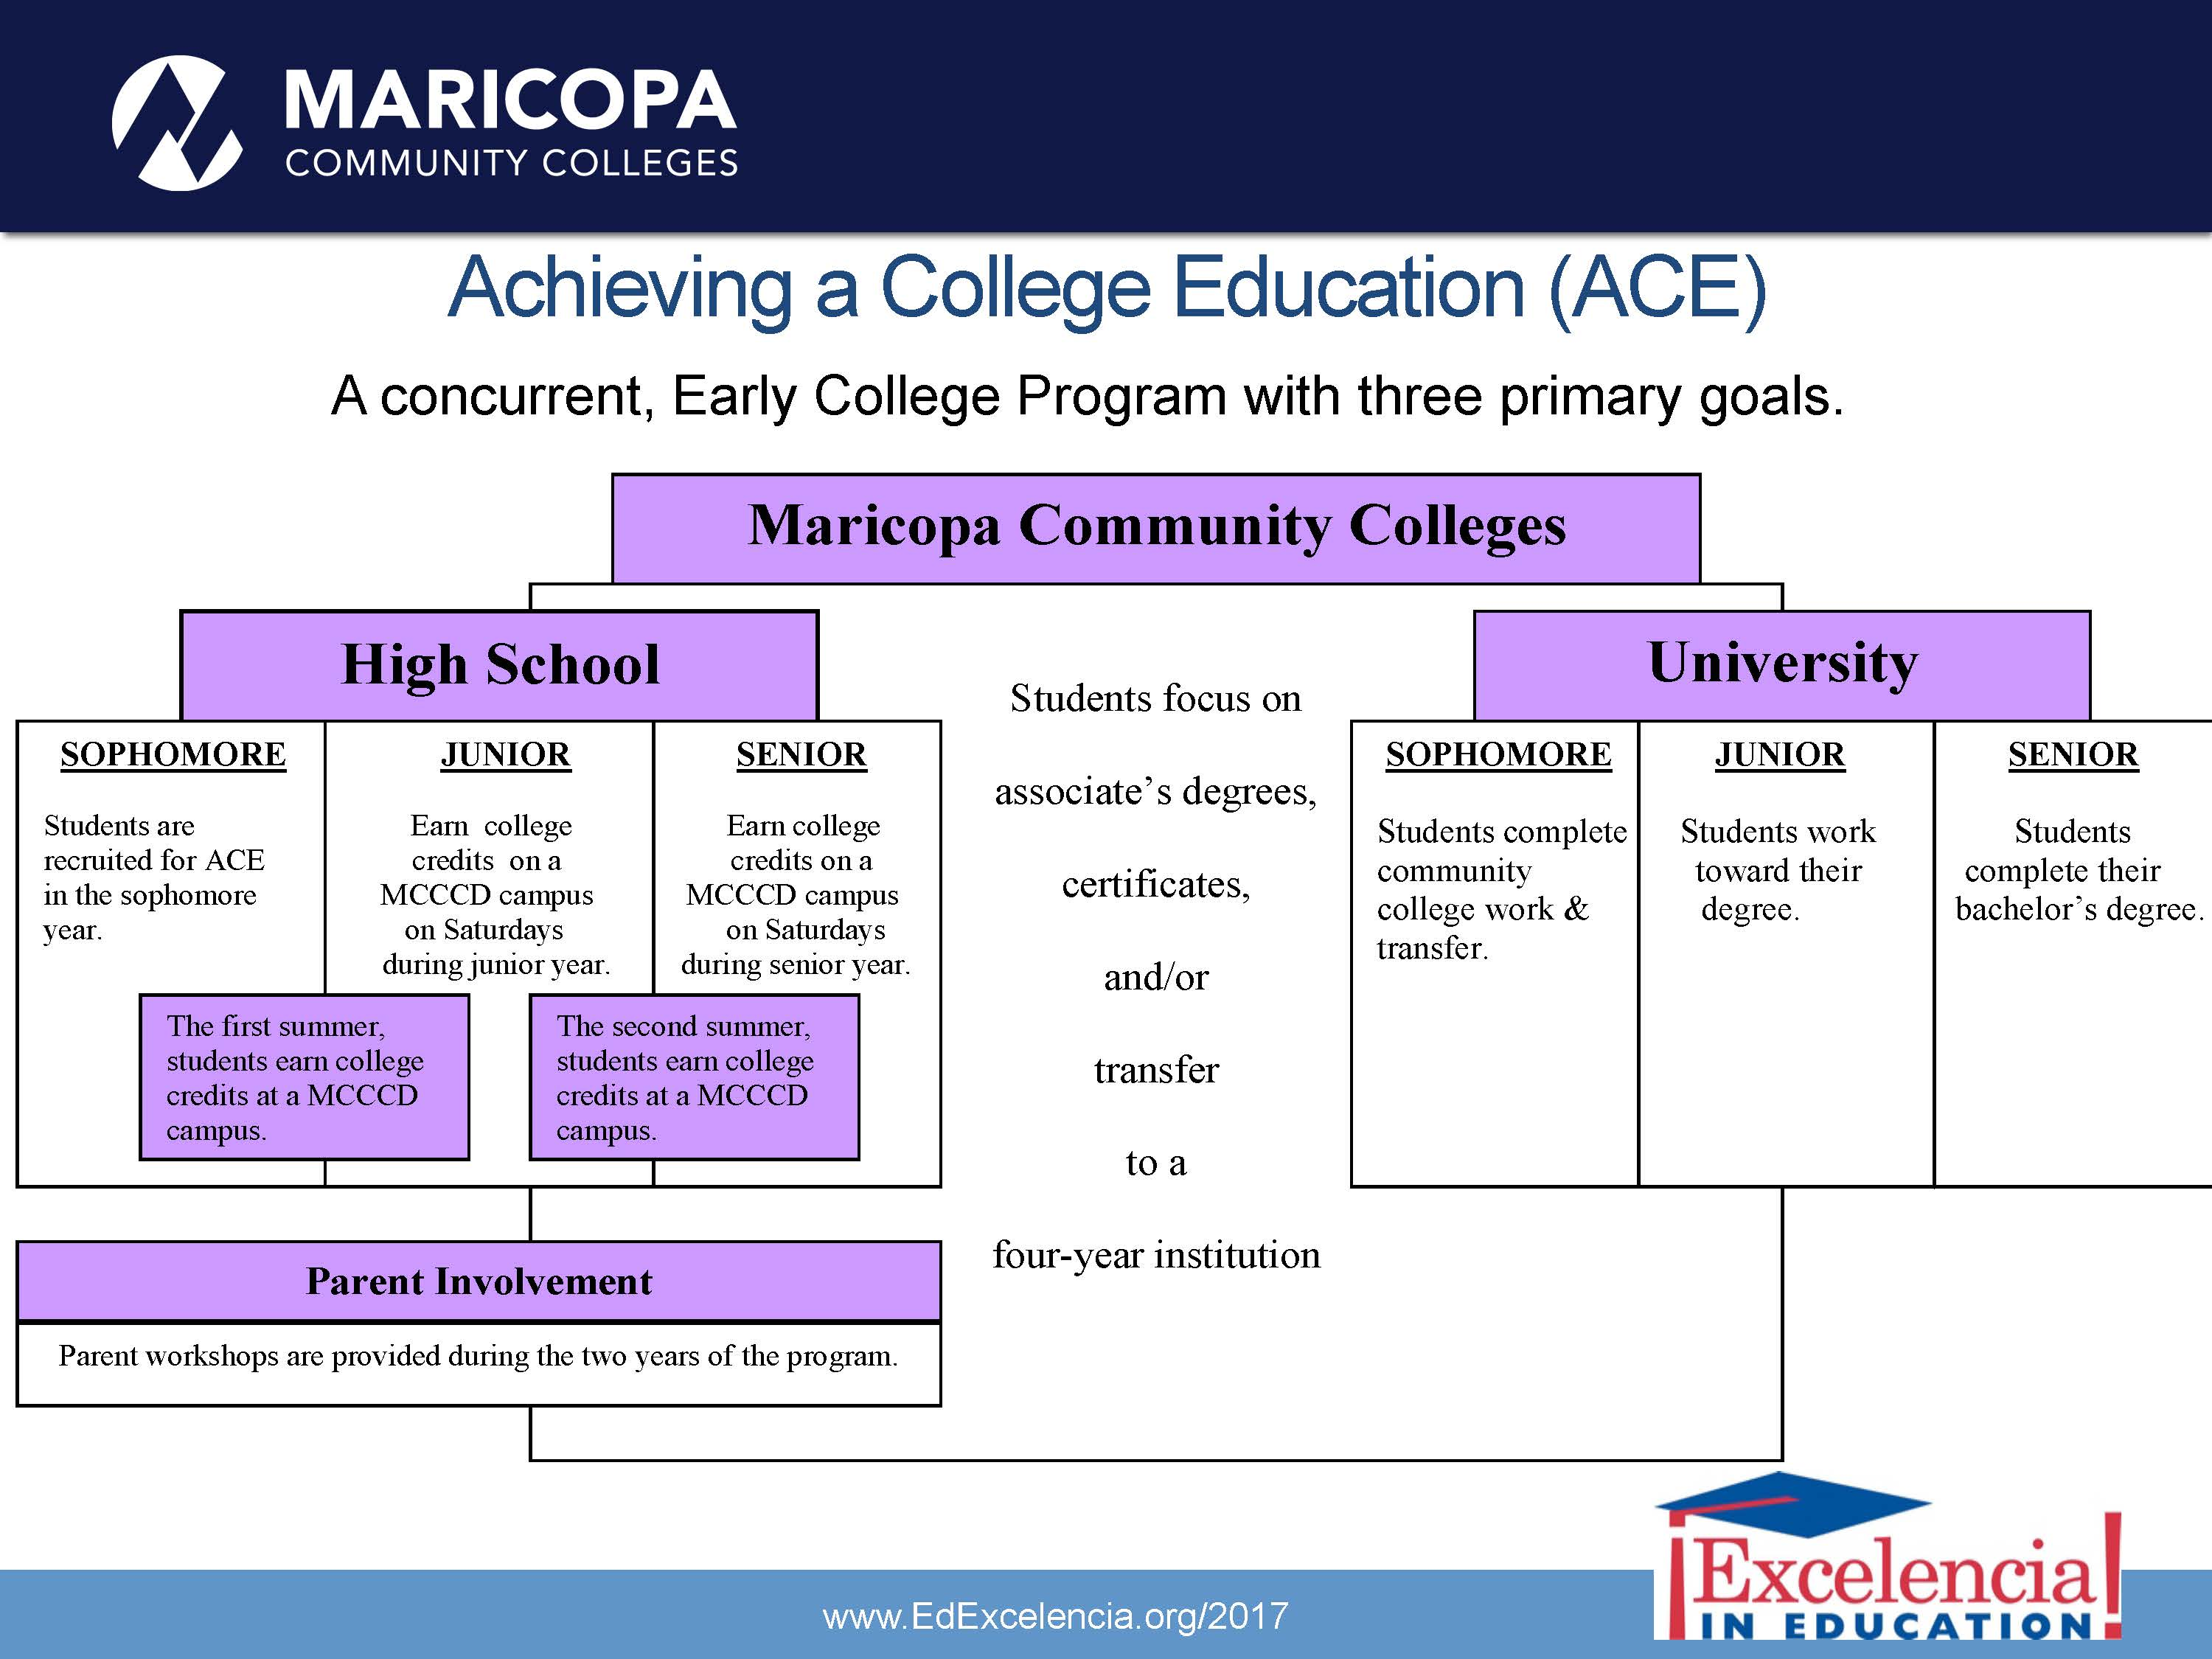 Achieving a College Education (ACE) Model. A concurrent, Early College Program with three primary goals.